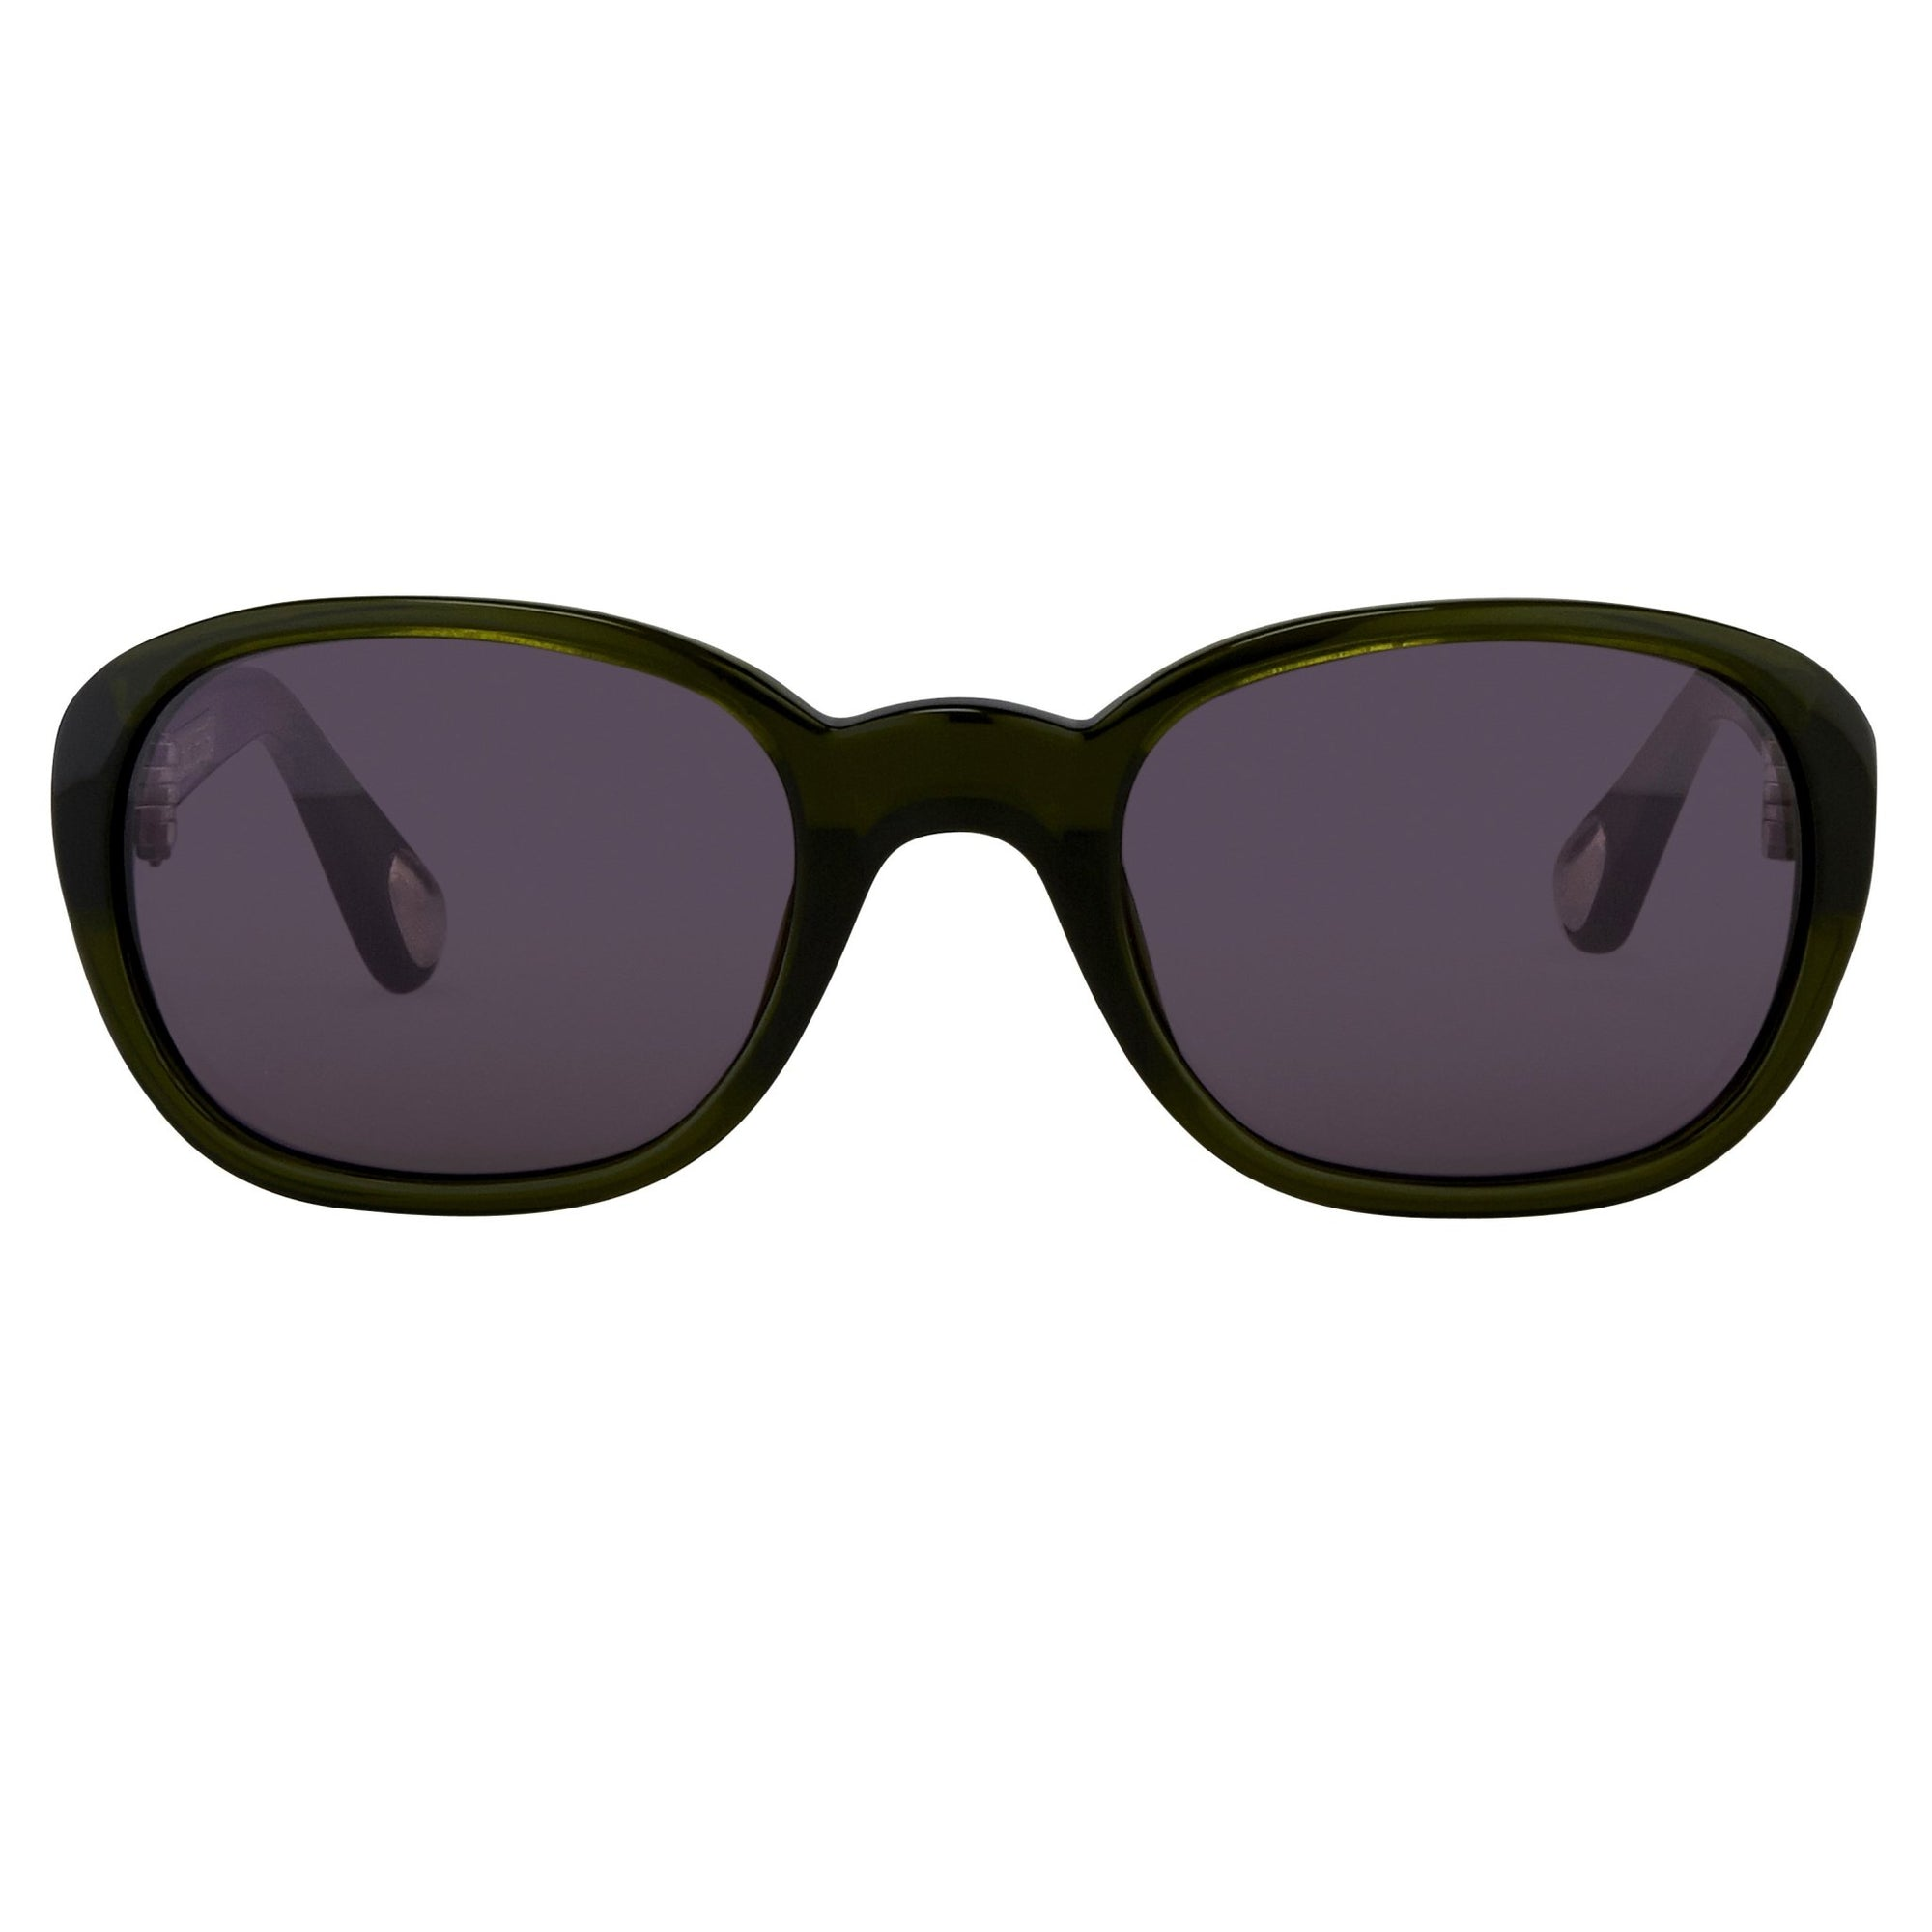 Ann Demeulemeester Sunglasses Oval Green 925 Silver with Purple Lenses Category 3 AD8C7SUN - Watches & Crystals